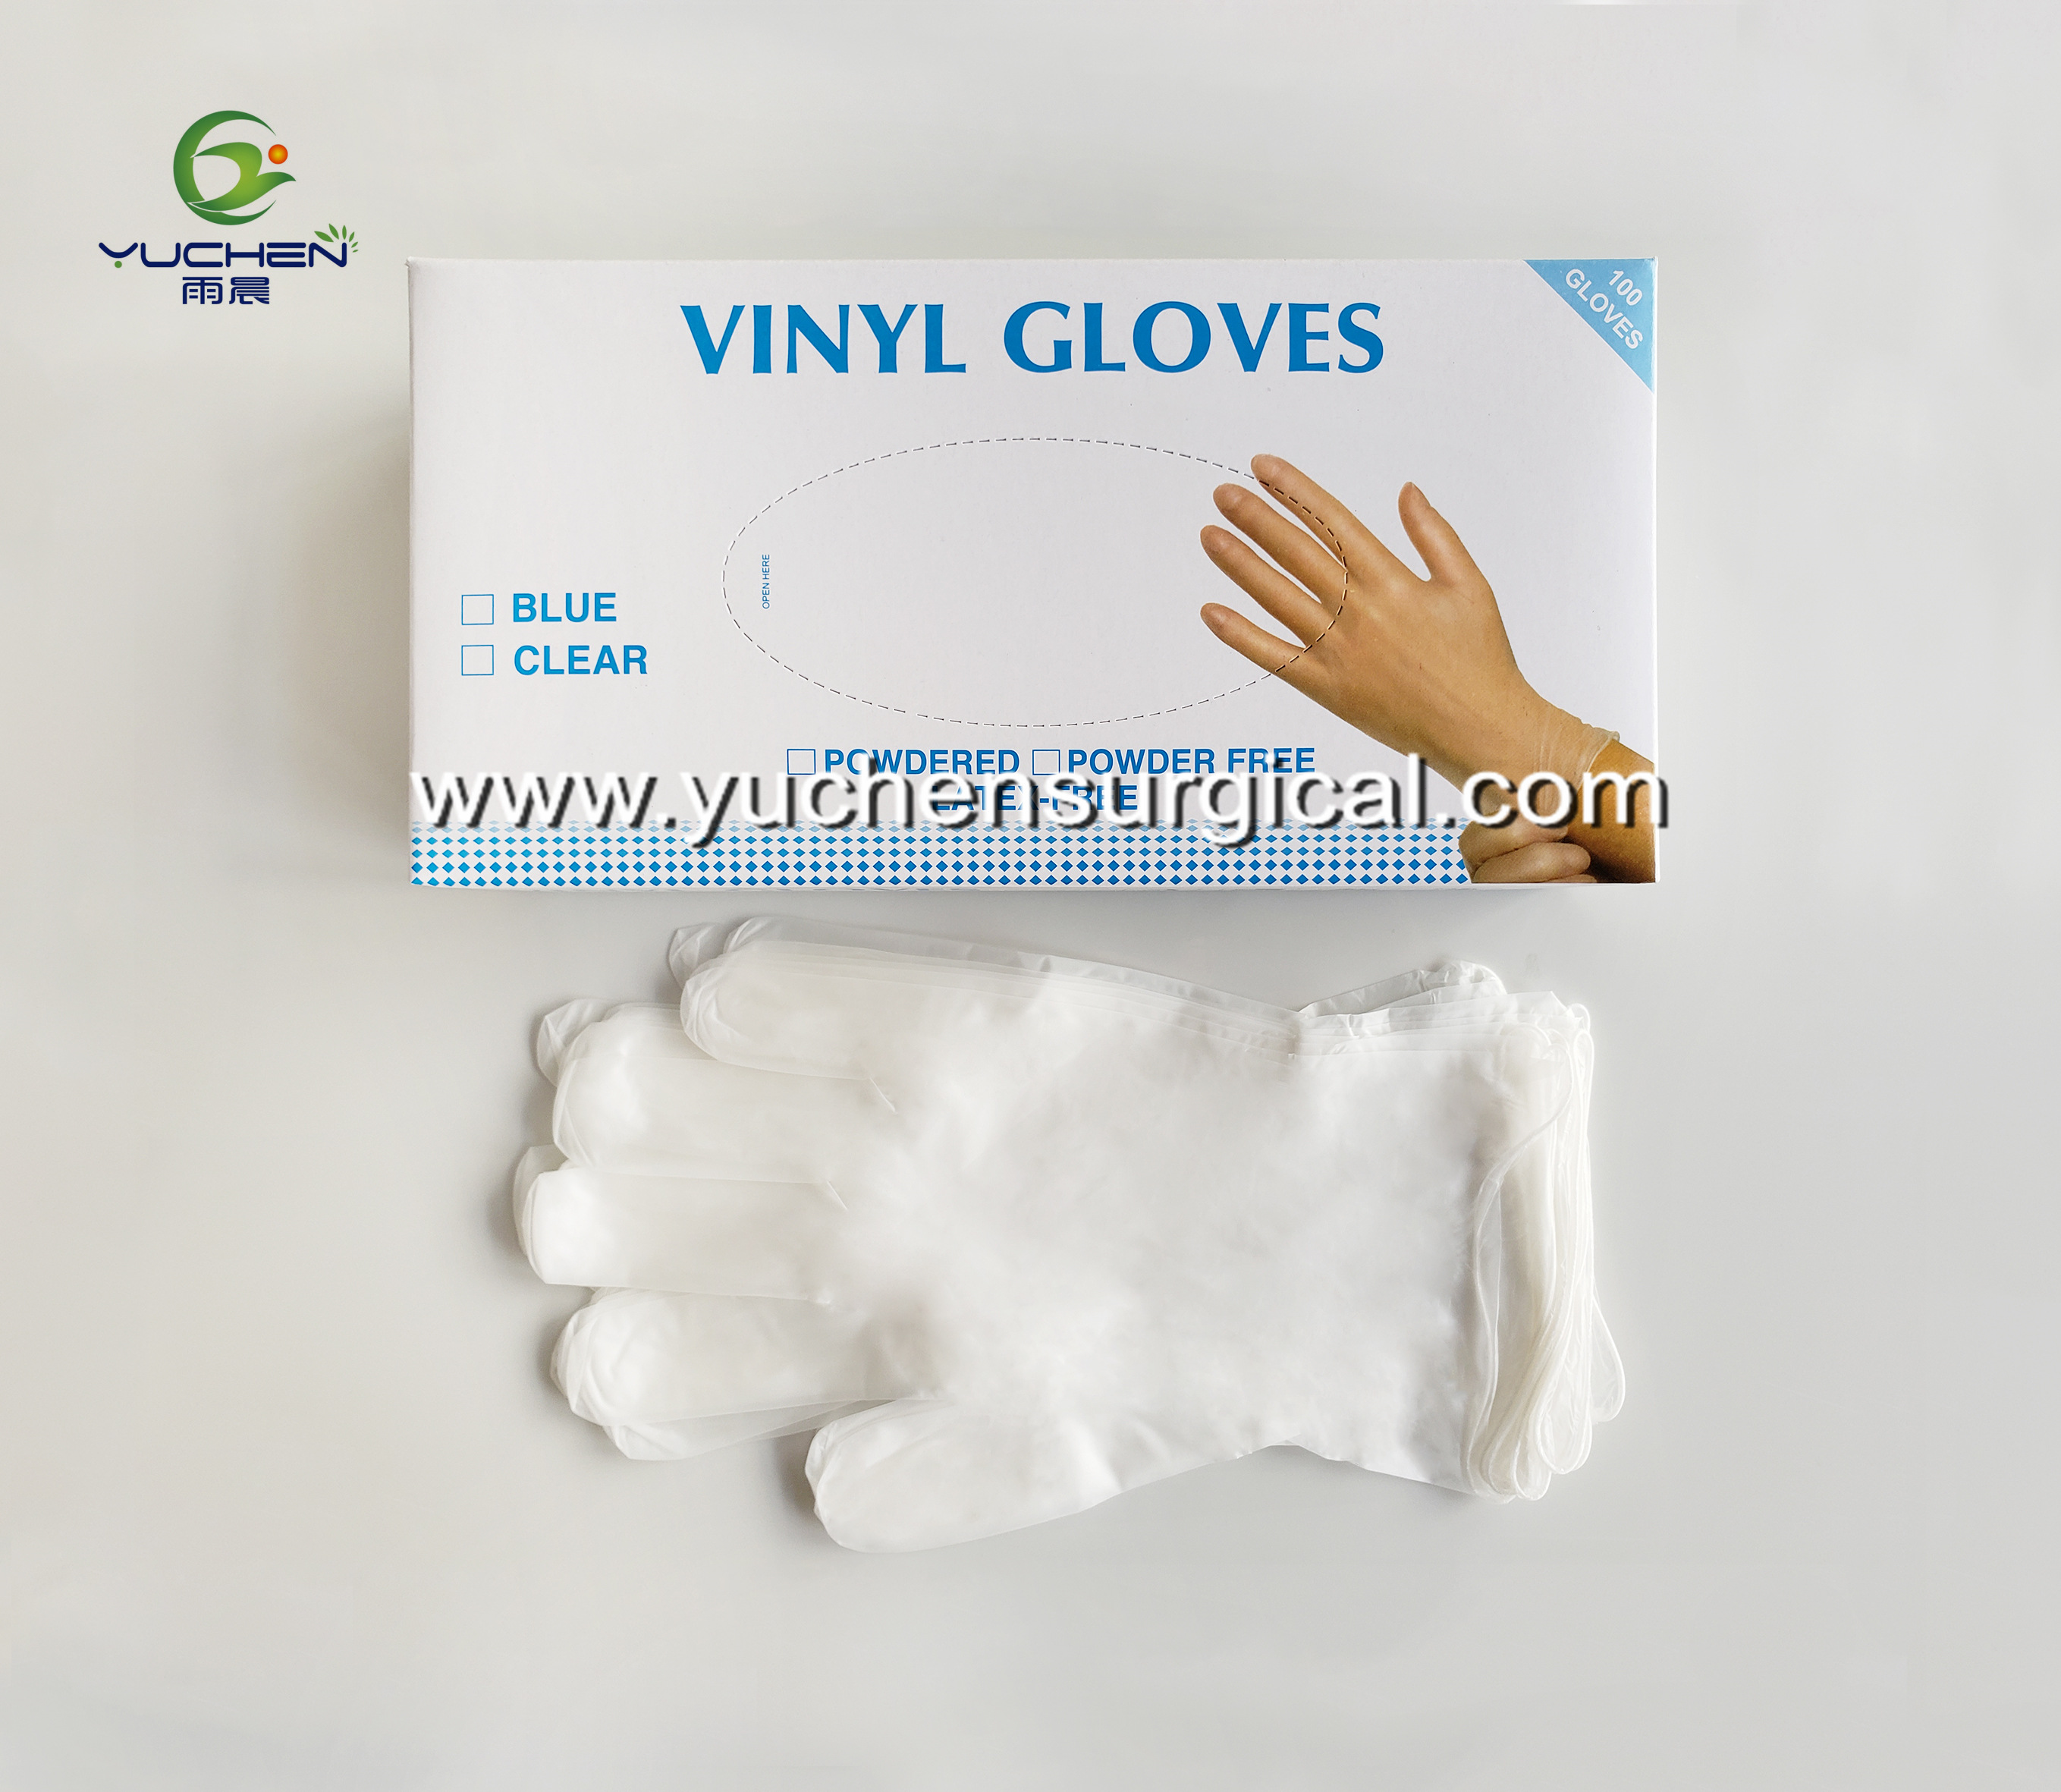 Powdered and powder free vinyl glove